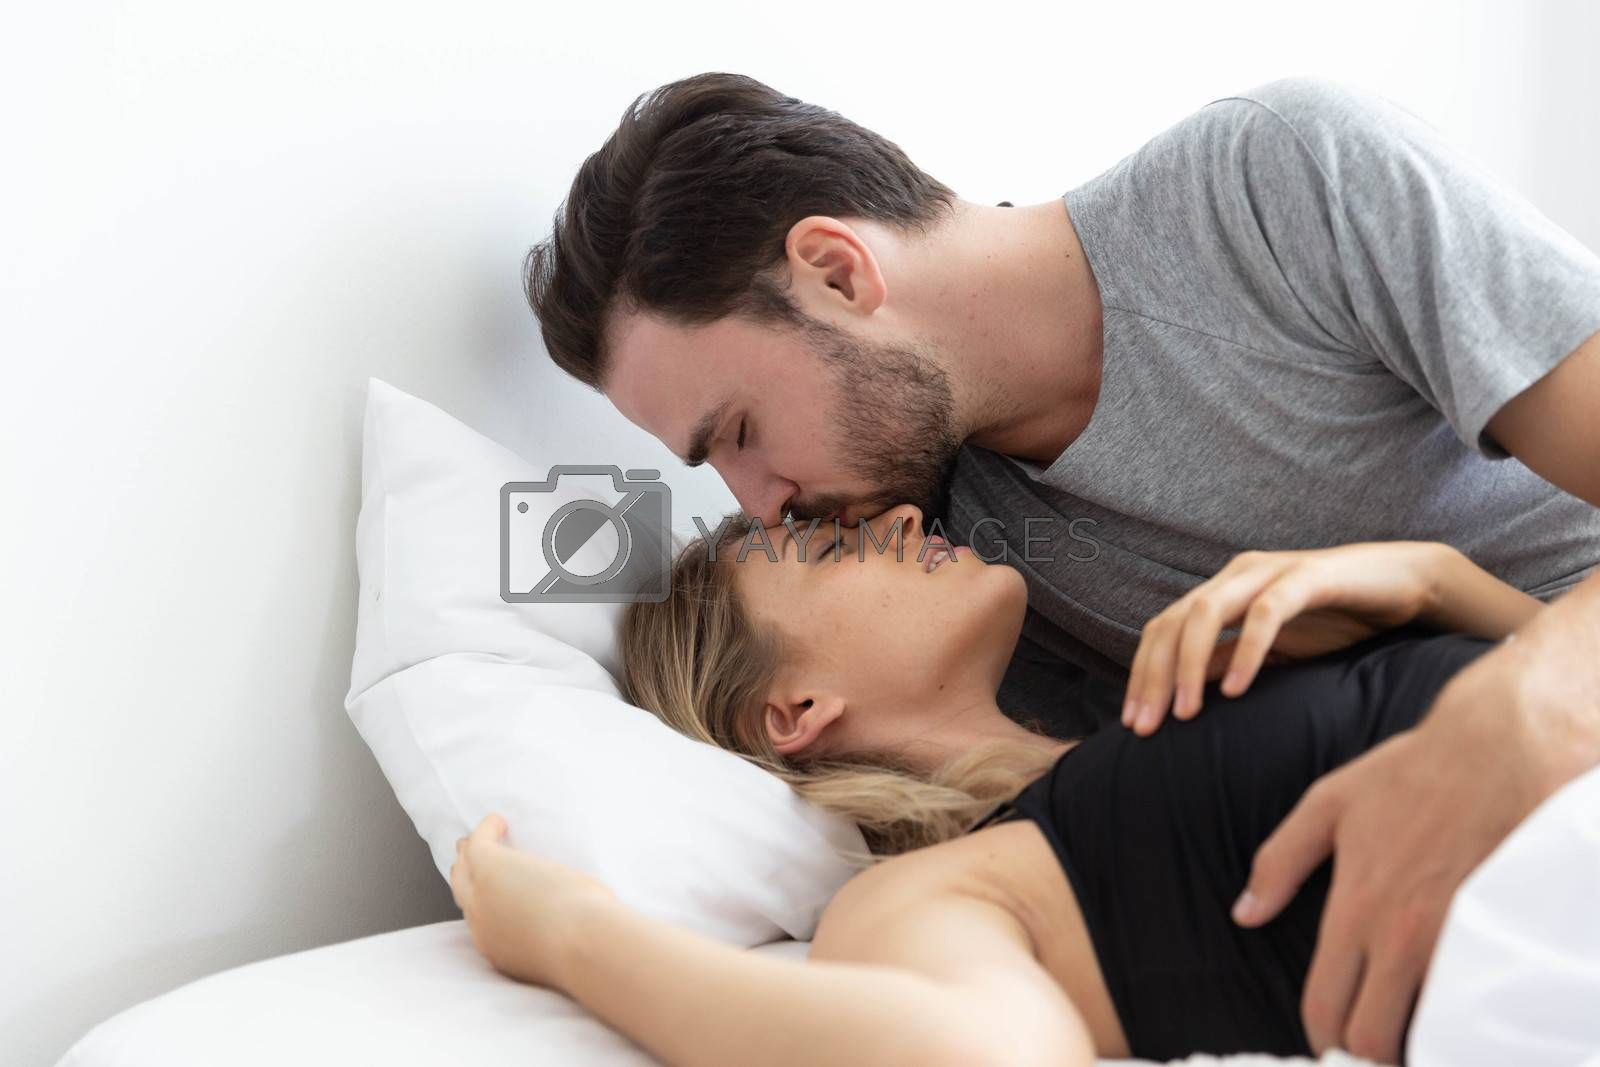 Caucasion couple on bed and man kiss women on her forehead